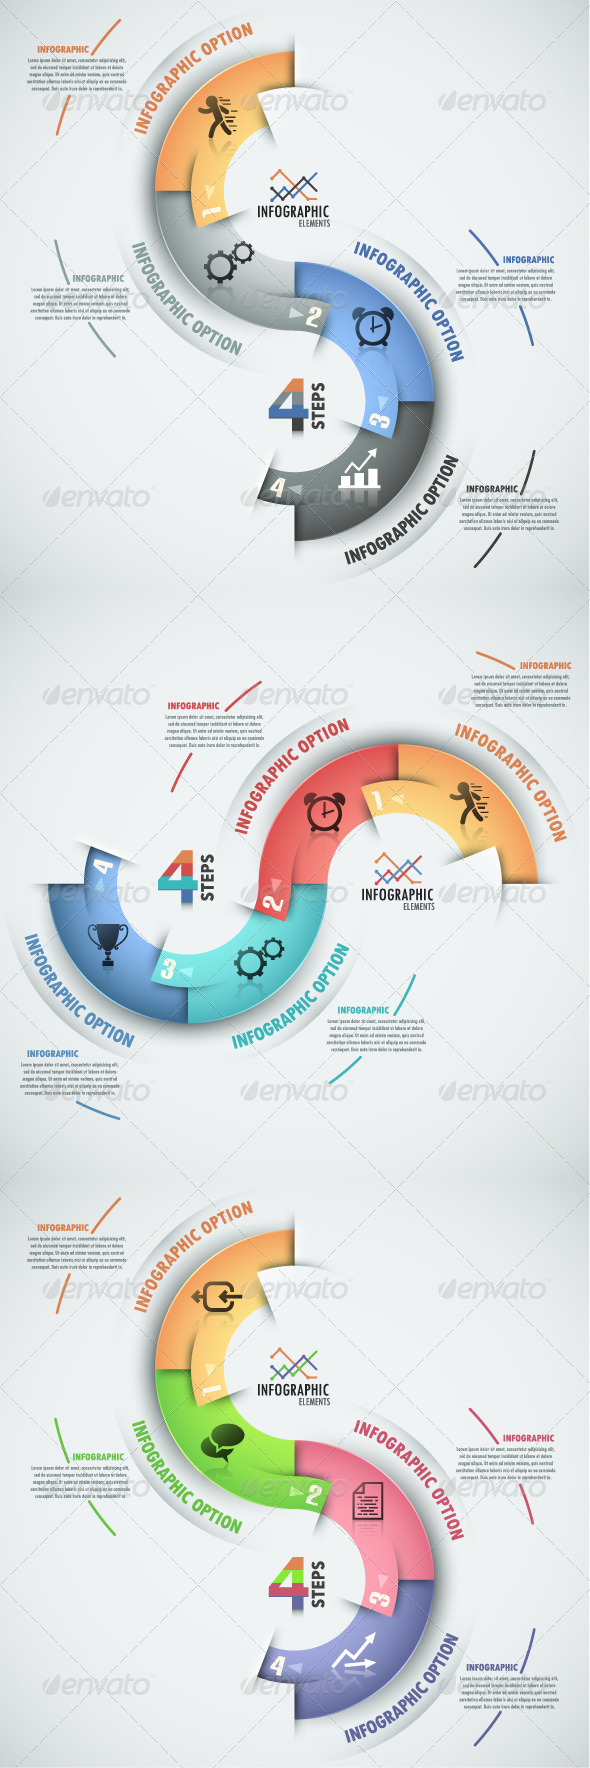 GraphicRiver Modern Infographic Process Template 3 Versions 8550851